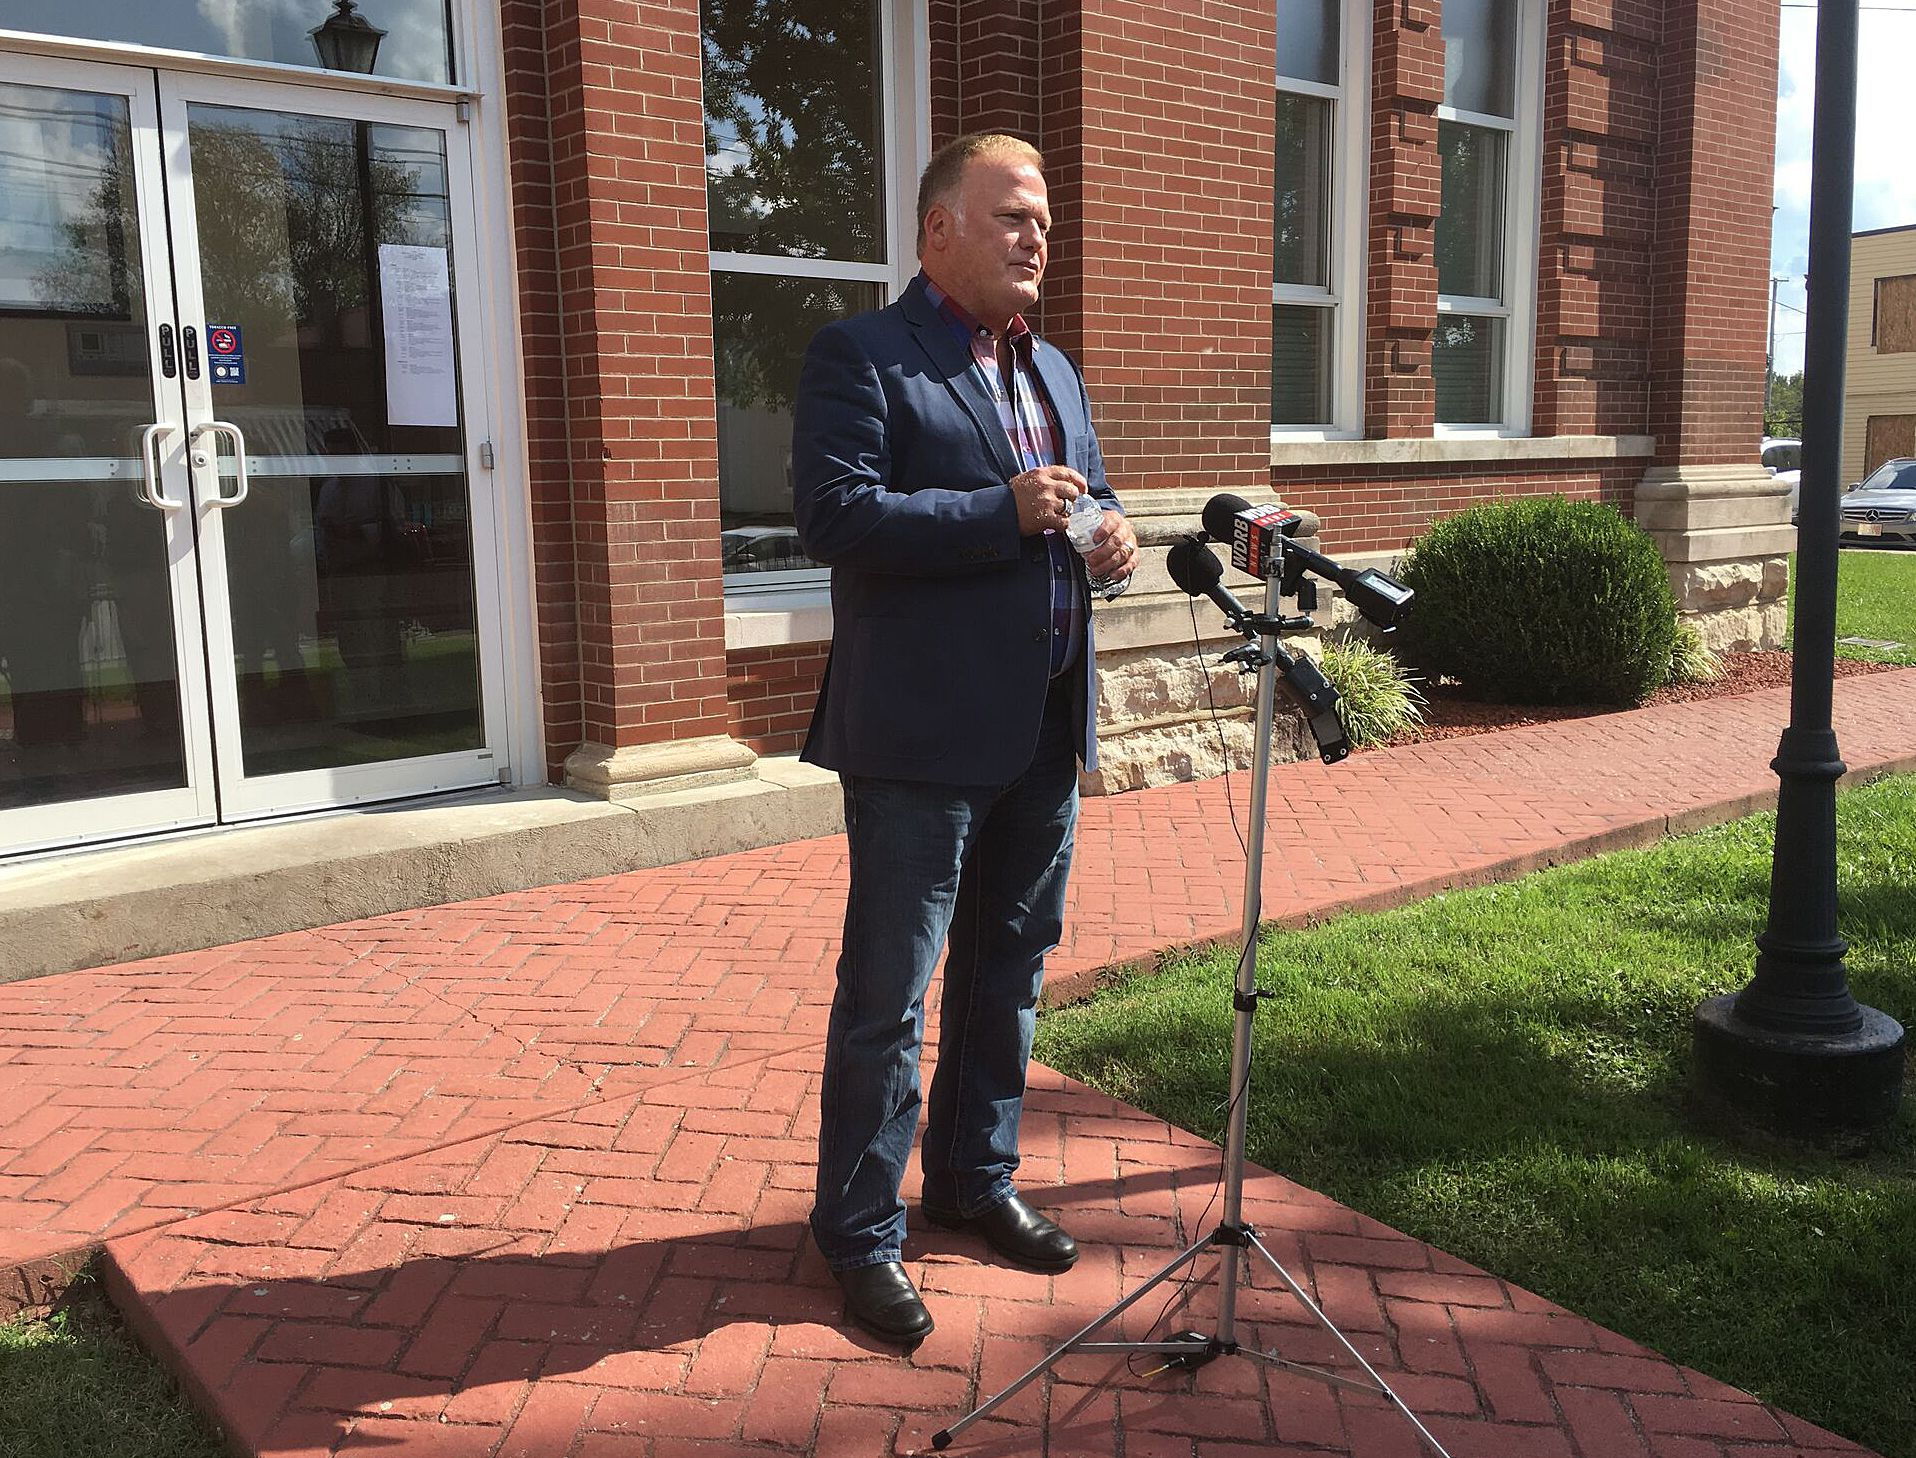 Kentucky state Rep. Dan Johnson speaks during a news conference outside the Bullitt County courthouse in Shepherdsville, Ky.